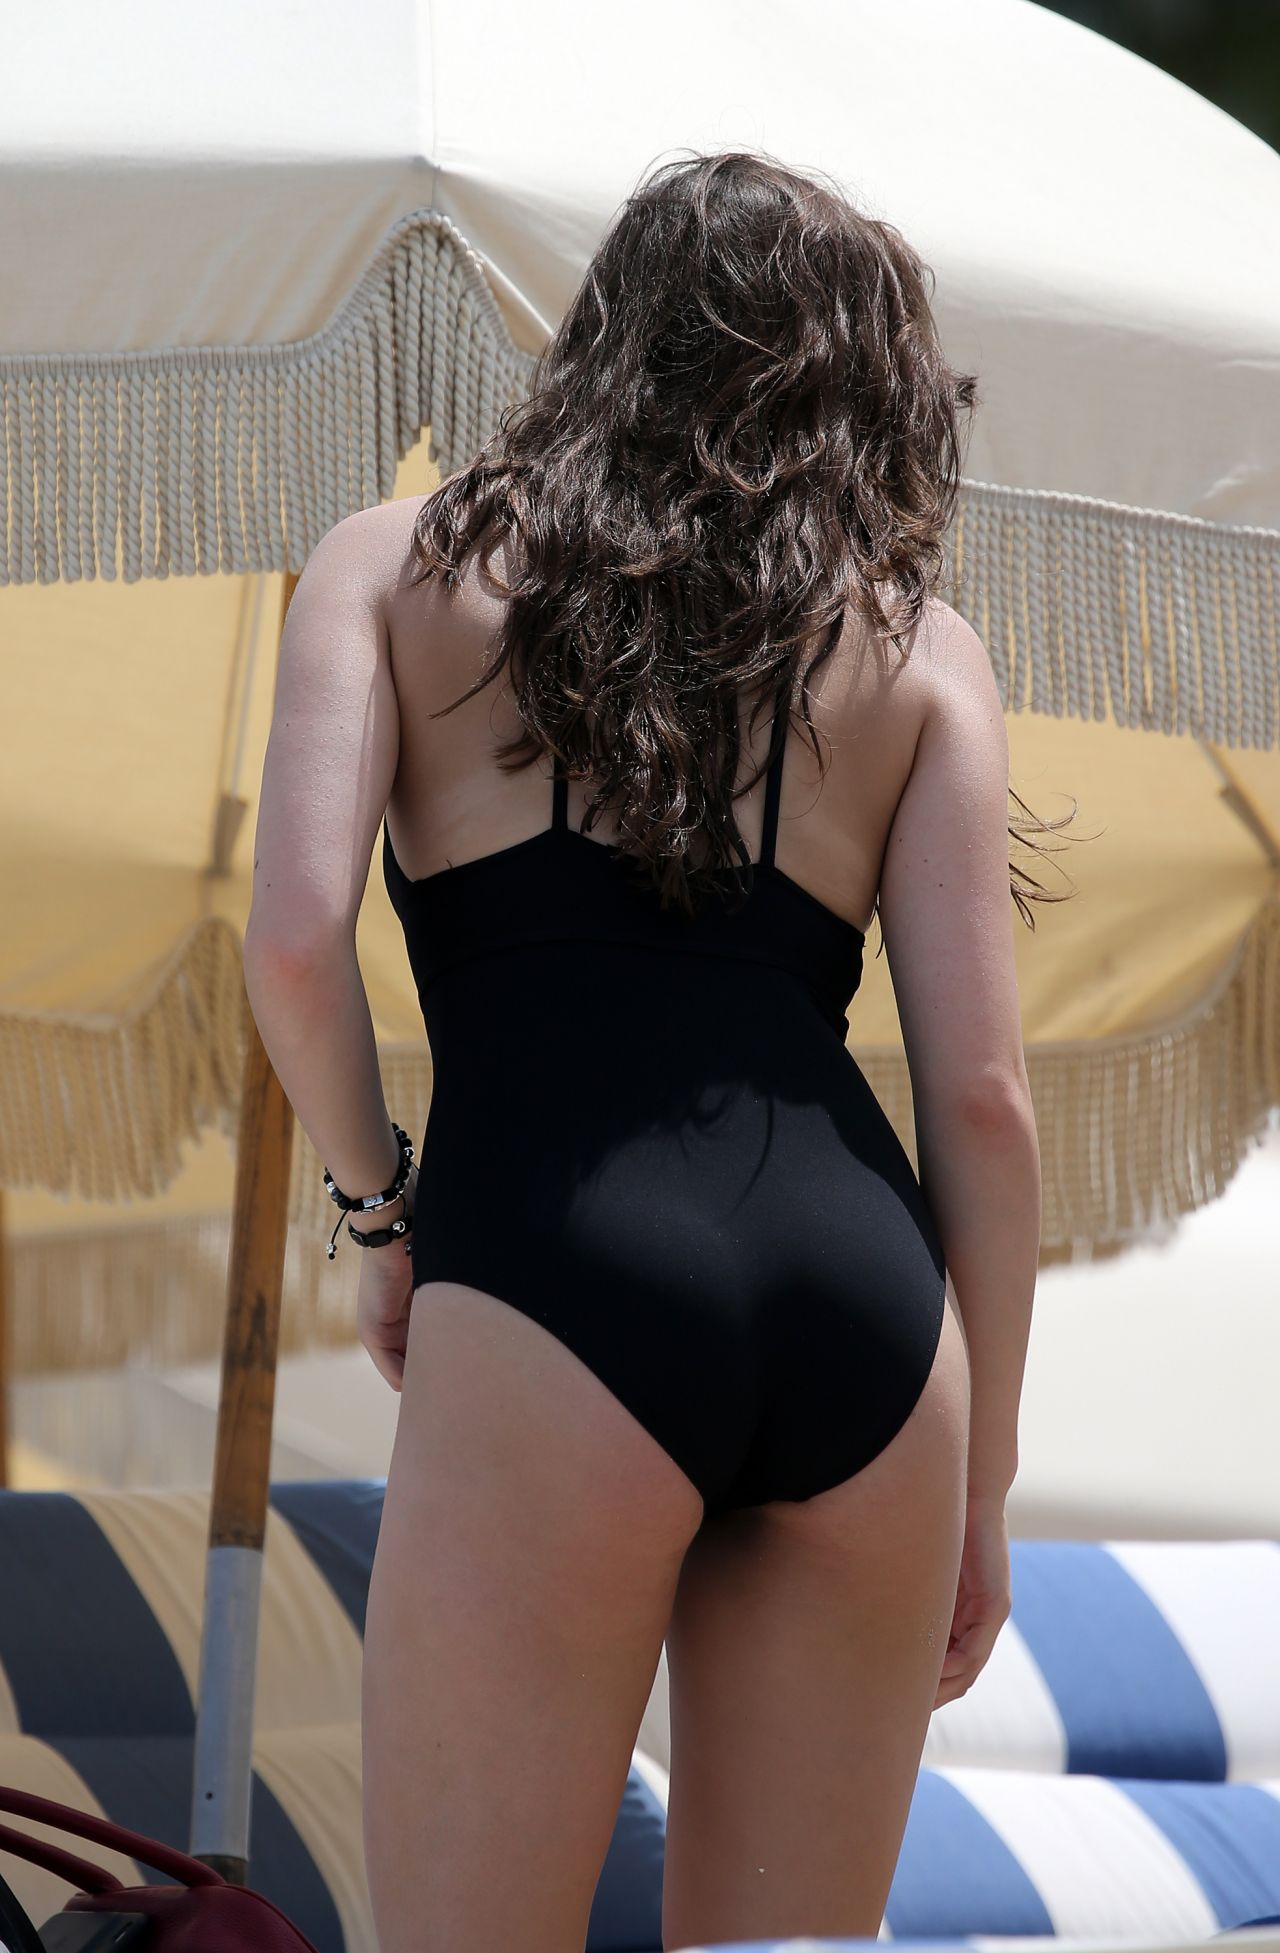 Hailee Steinfeld Hot In Swimsuit Beach In Miami 5 22 2016